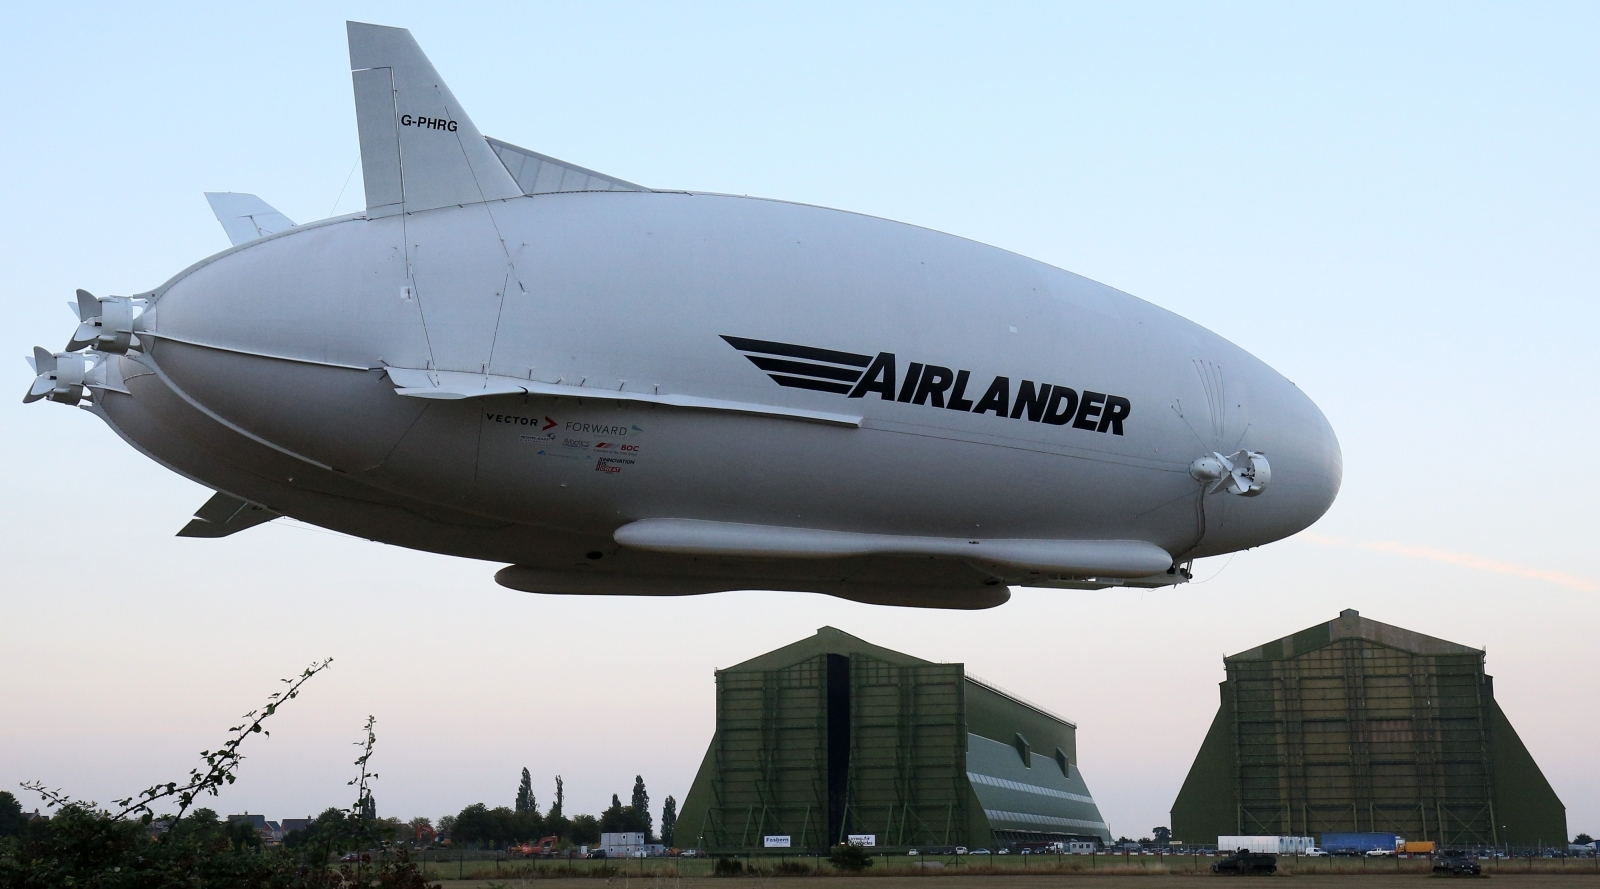 World's longest aircraft collapses in UK